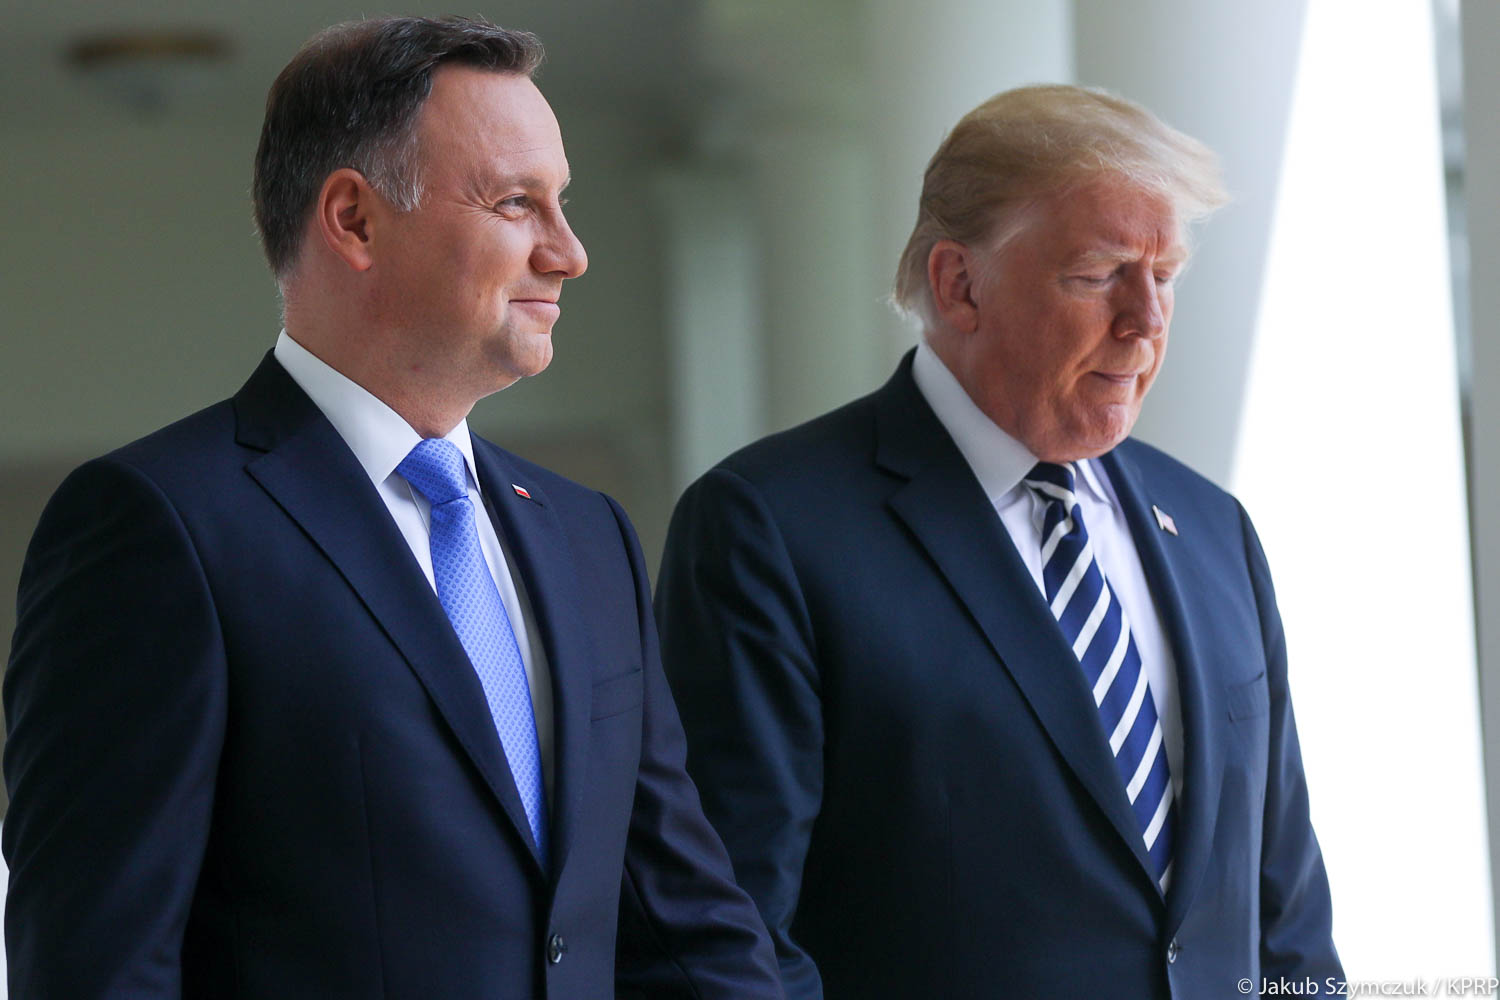 WI Daily News – Andrzej Duda and Donald Trump to hold meeting at White House